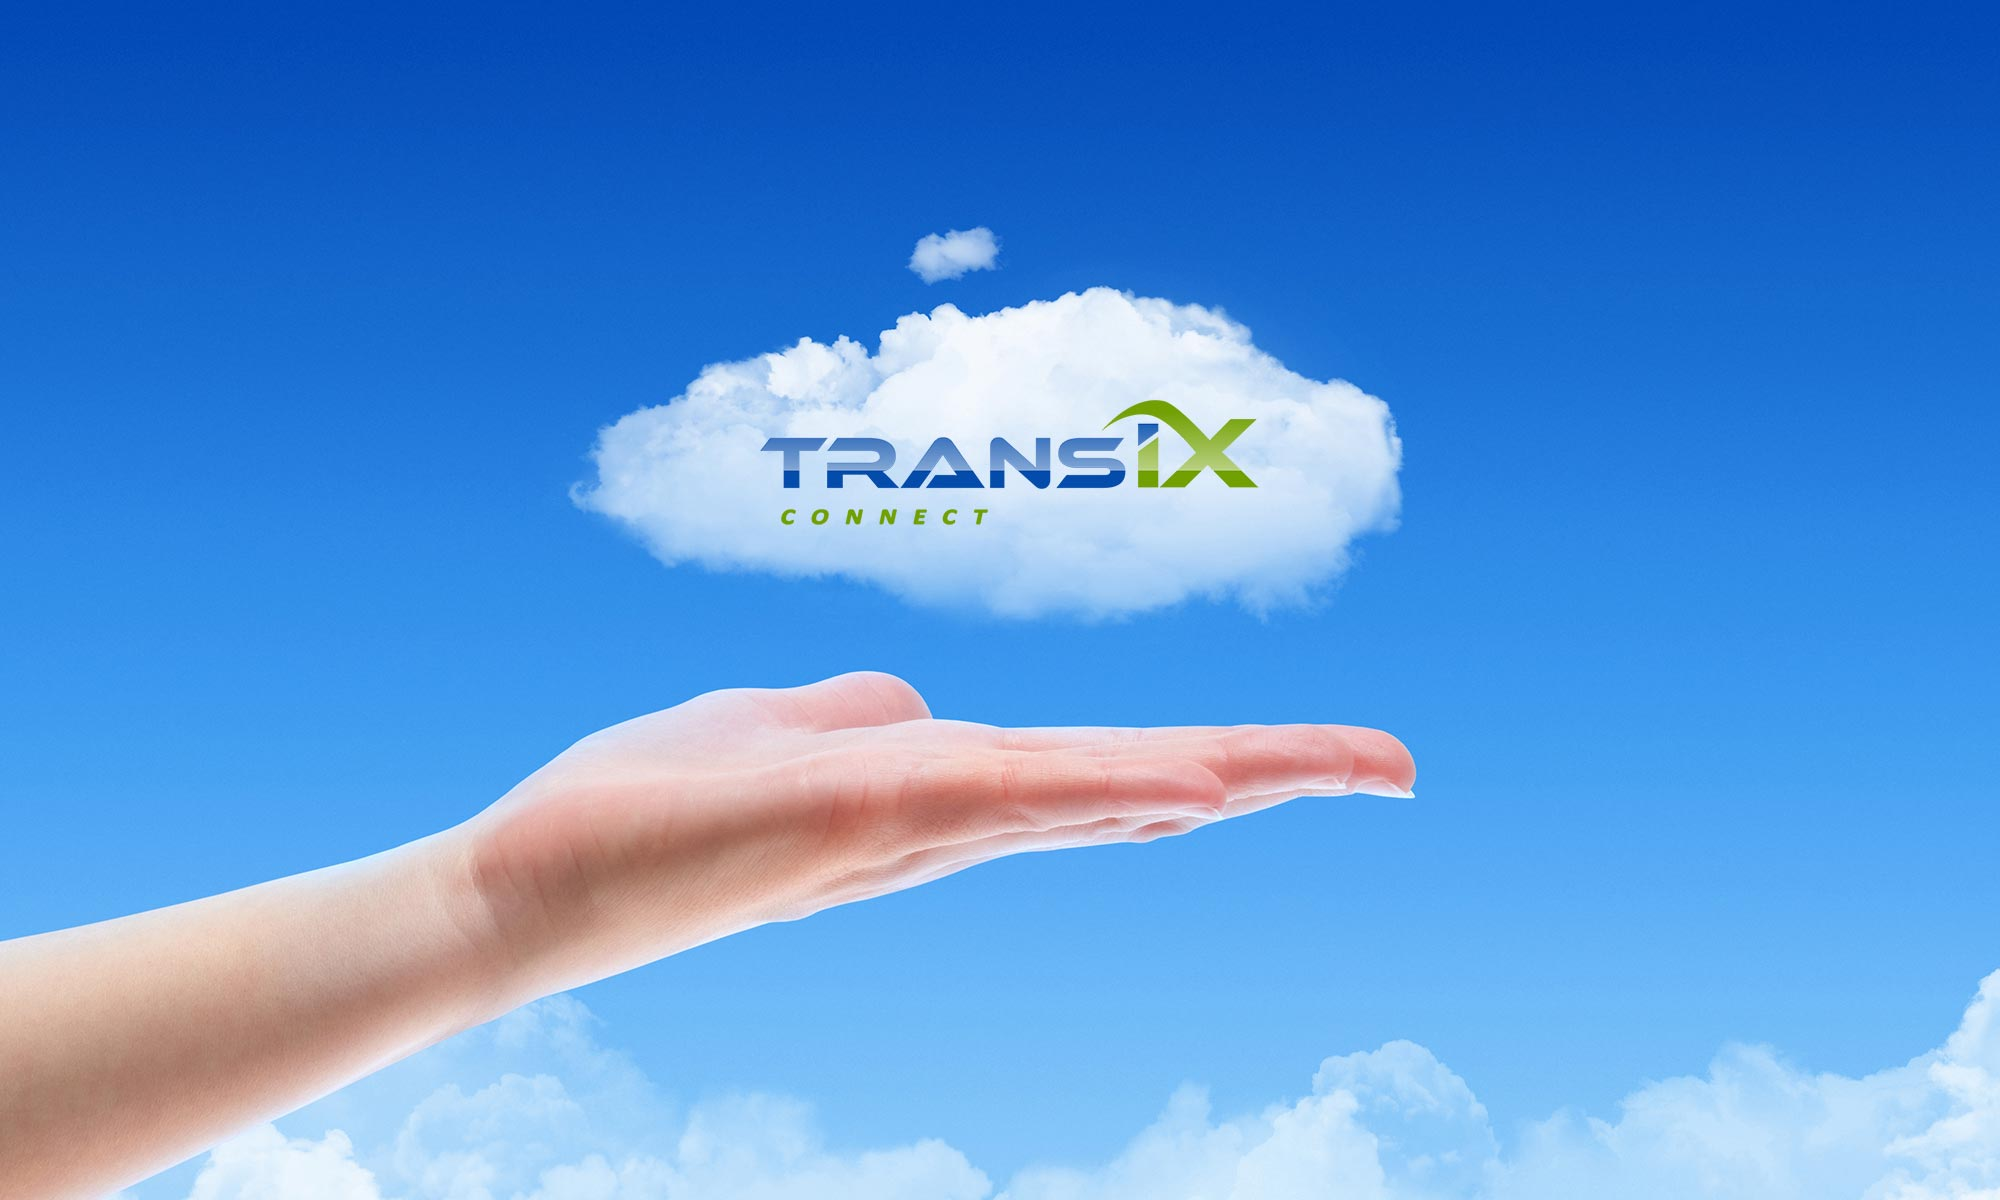 Trans-iX Connect